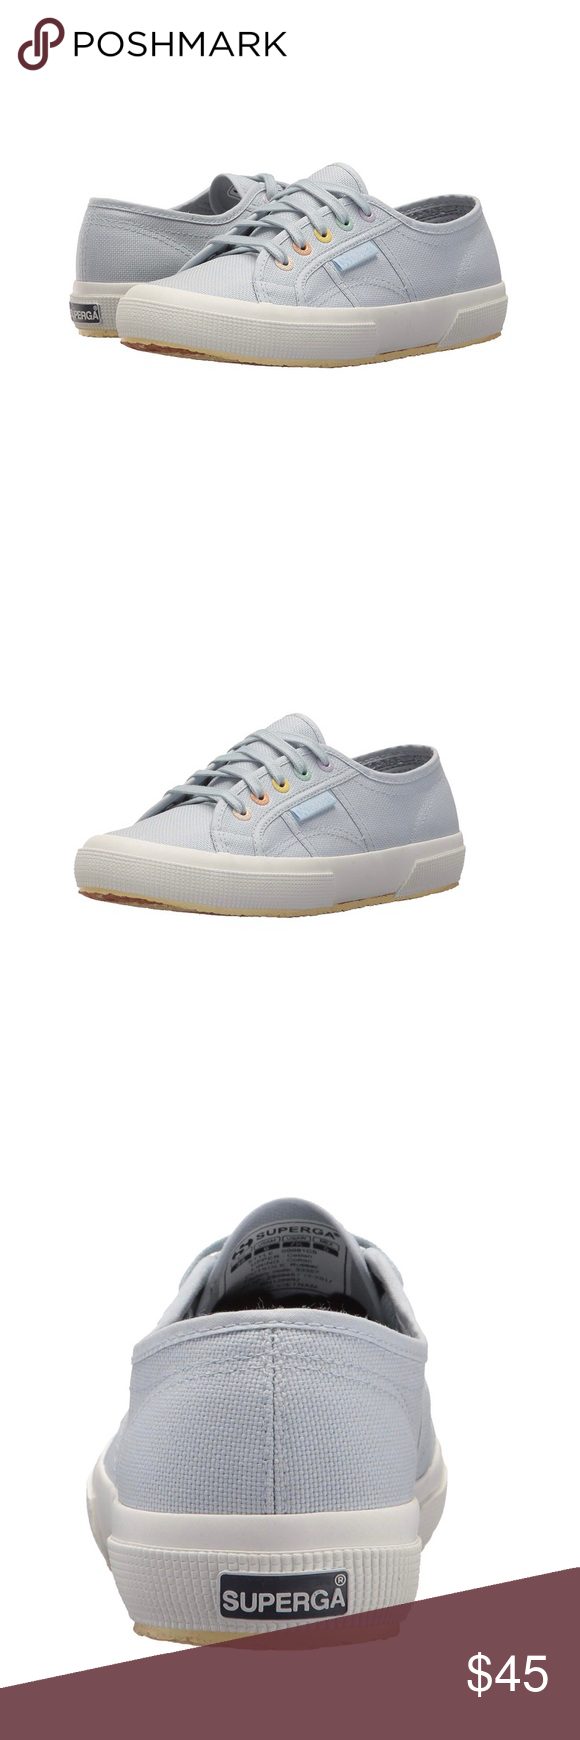 ab310cd39b657 ✨Superga Women's 2750 Multi Color Eyelets Sneaker Brand new with ...